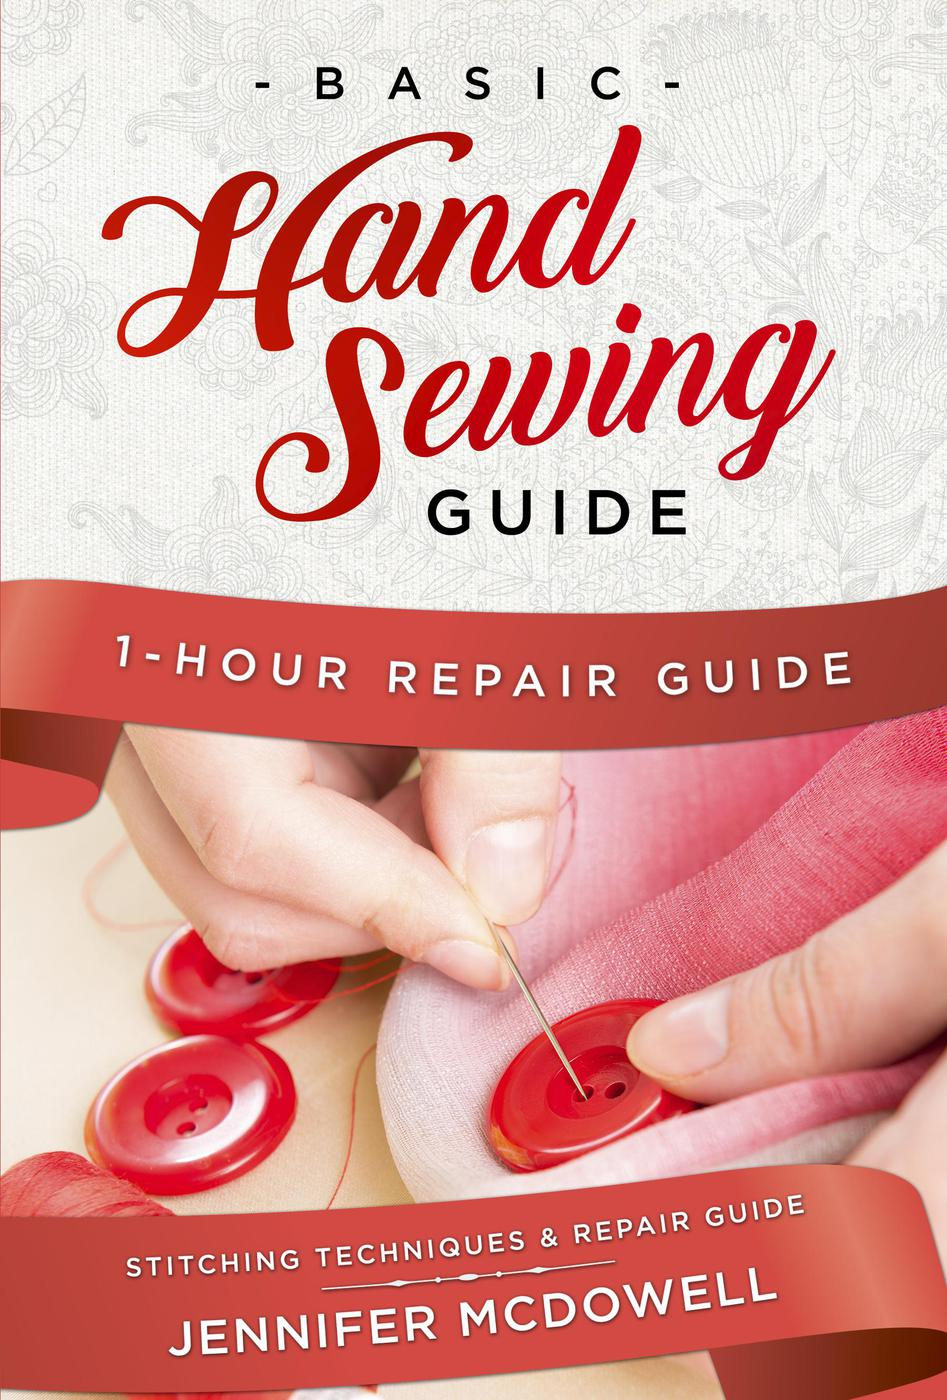 Basic Hand Sewing Guide – 1-Hour Repair Guide Stitching Techniques & Repair Guide